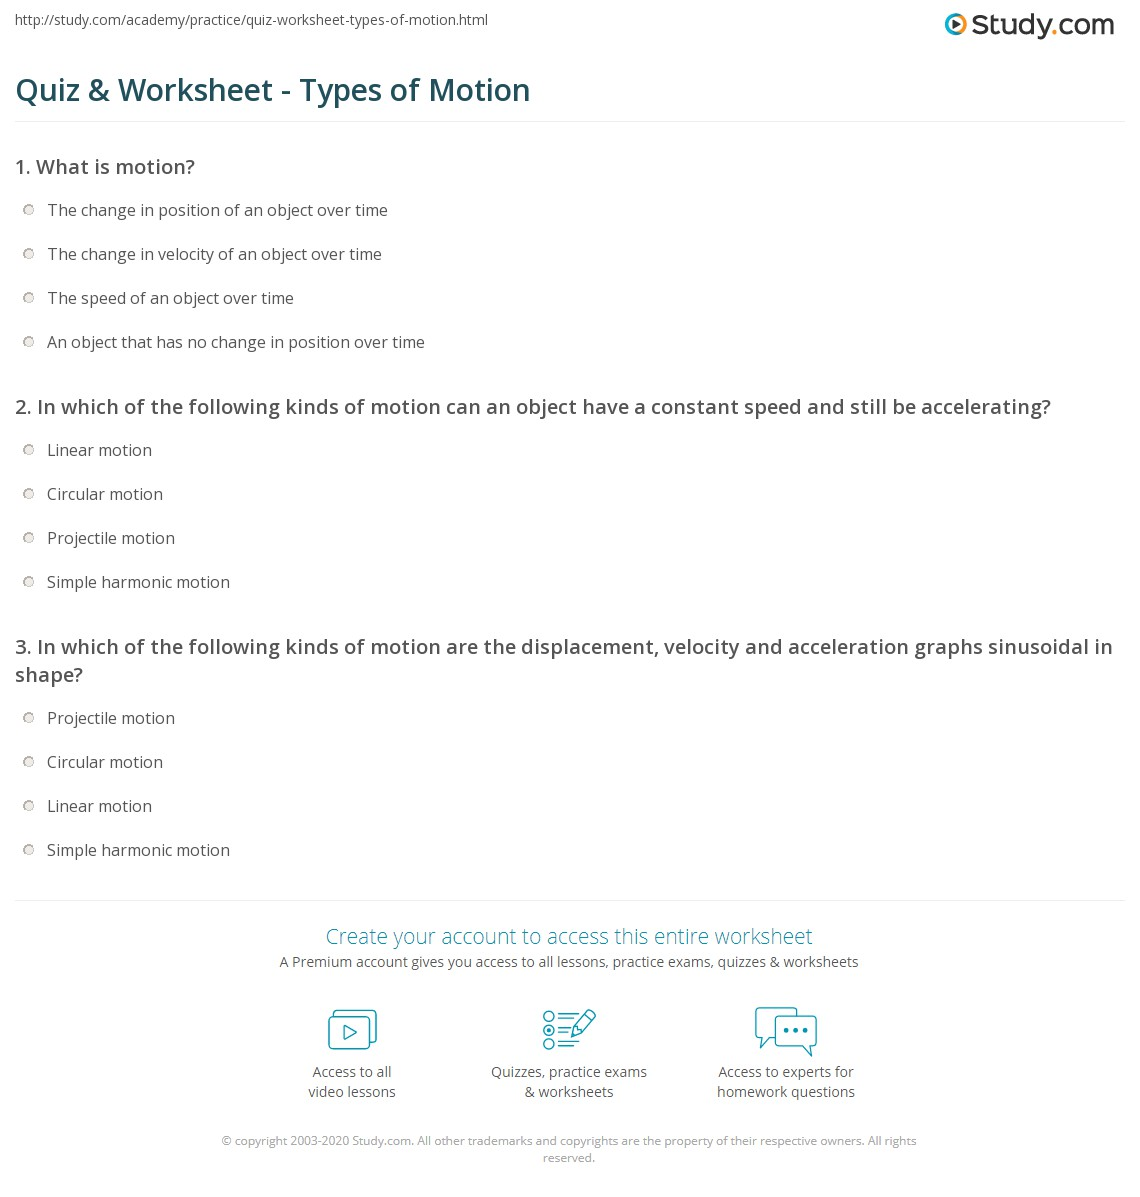 Quiz & Worksheet - Types of Motion | Study.com